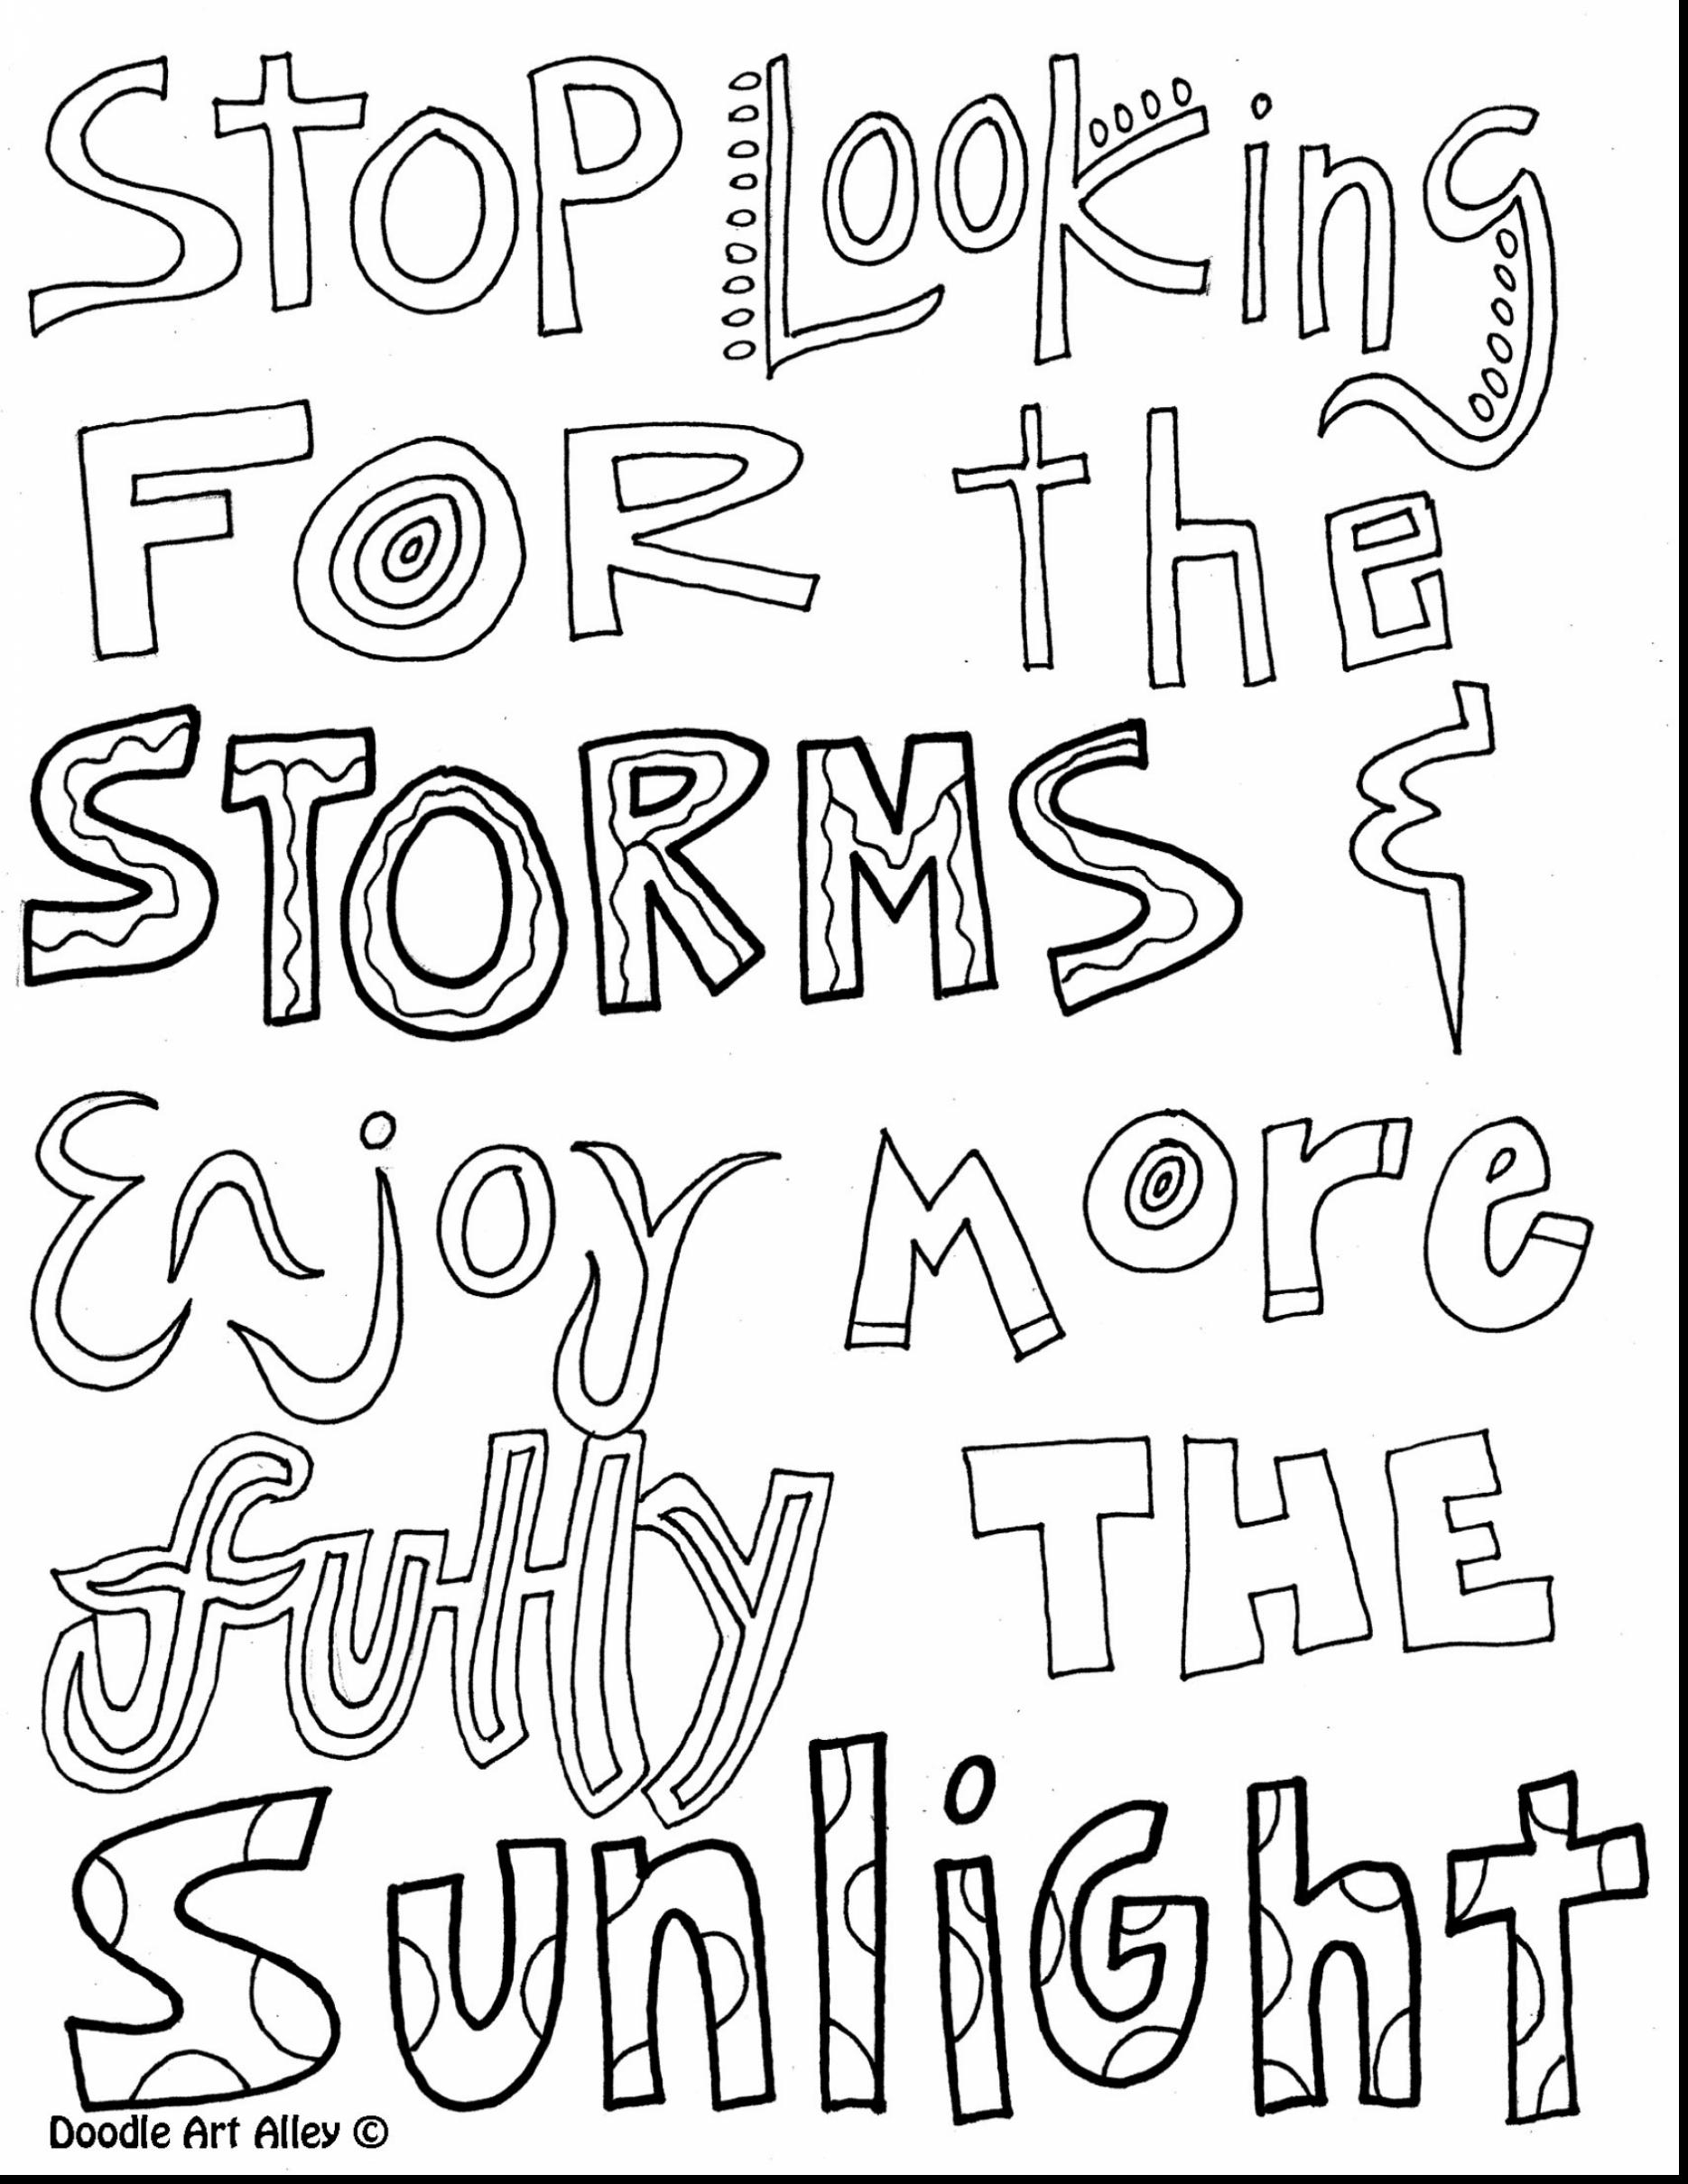 Quote Coloring Pages to Print Printable Download – Free Coloring Sheets